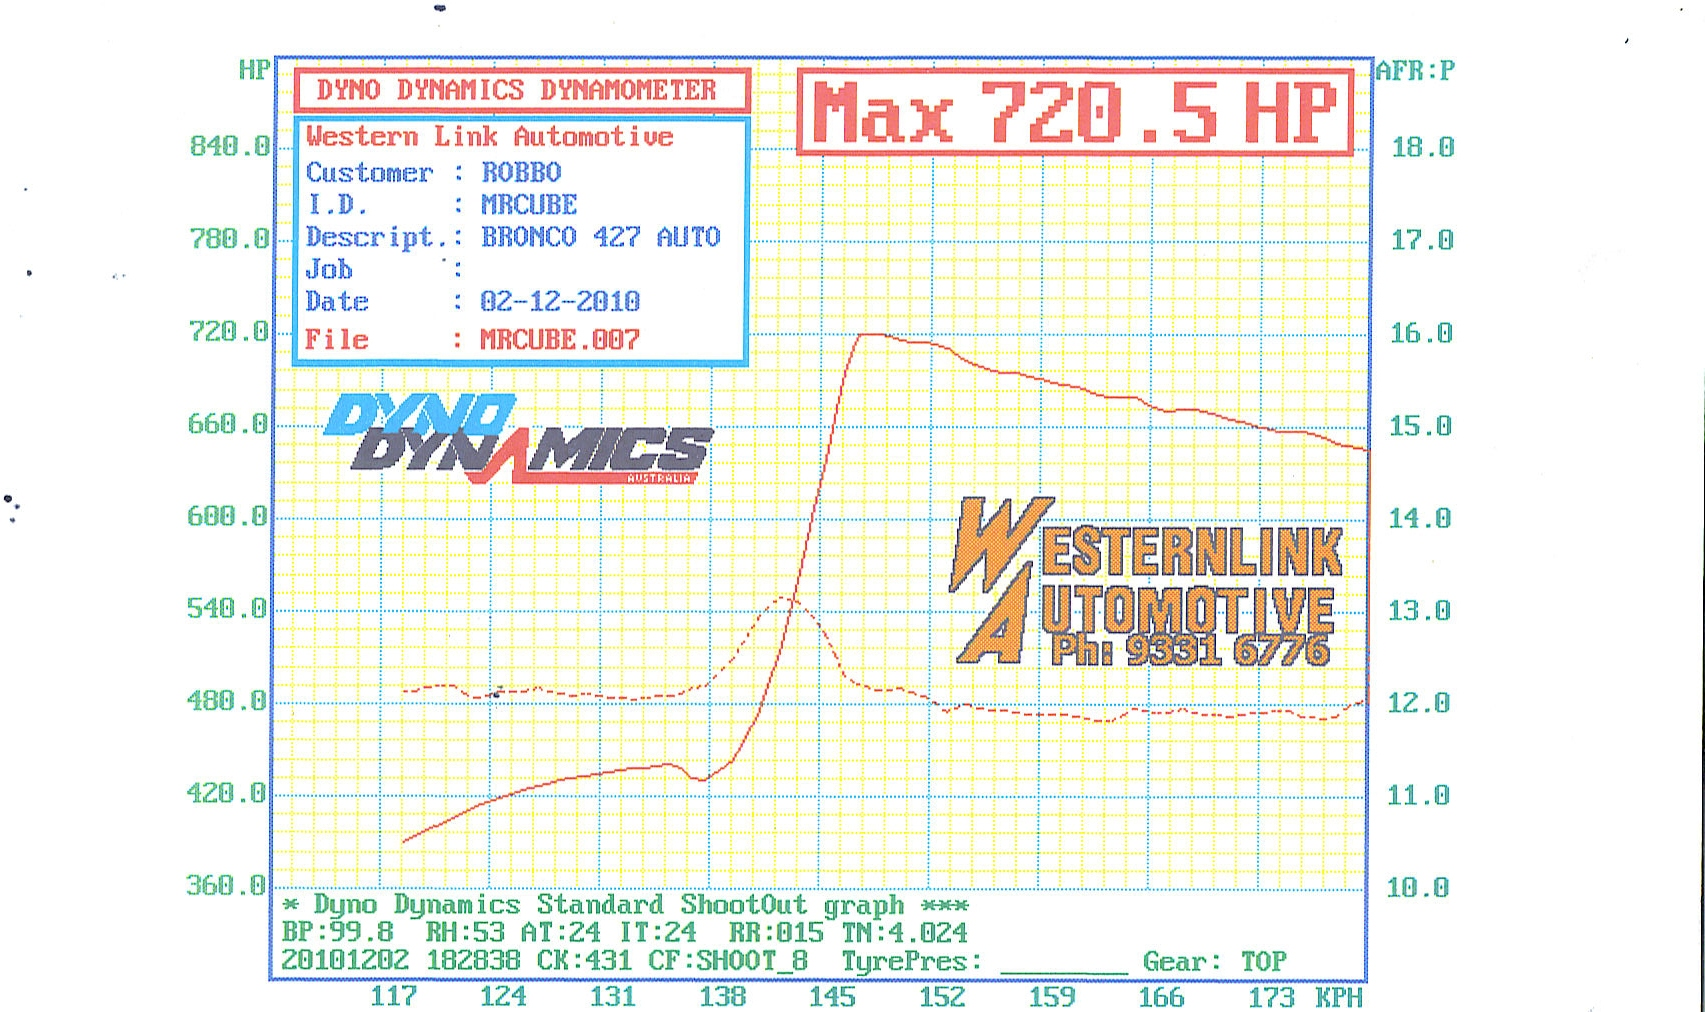 Ford Bronco Dyno Graph Results